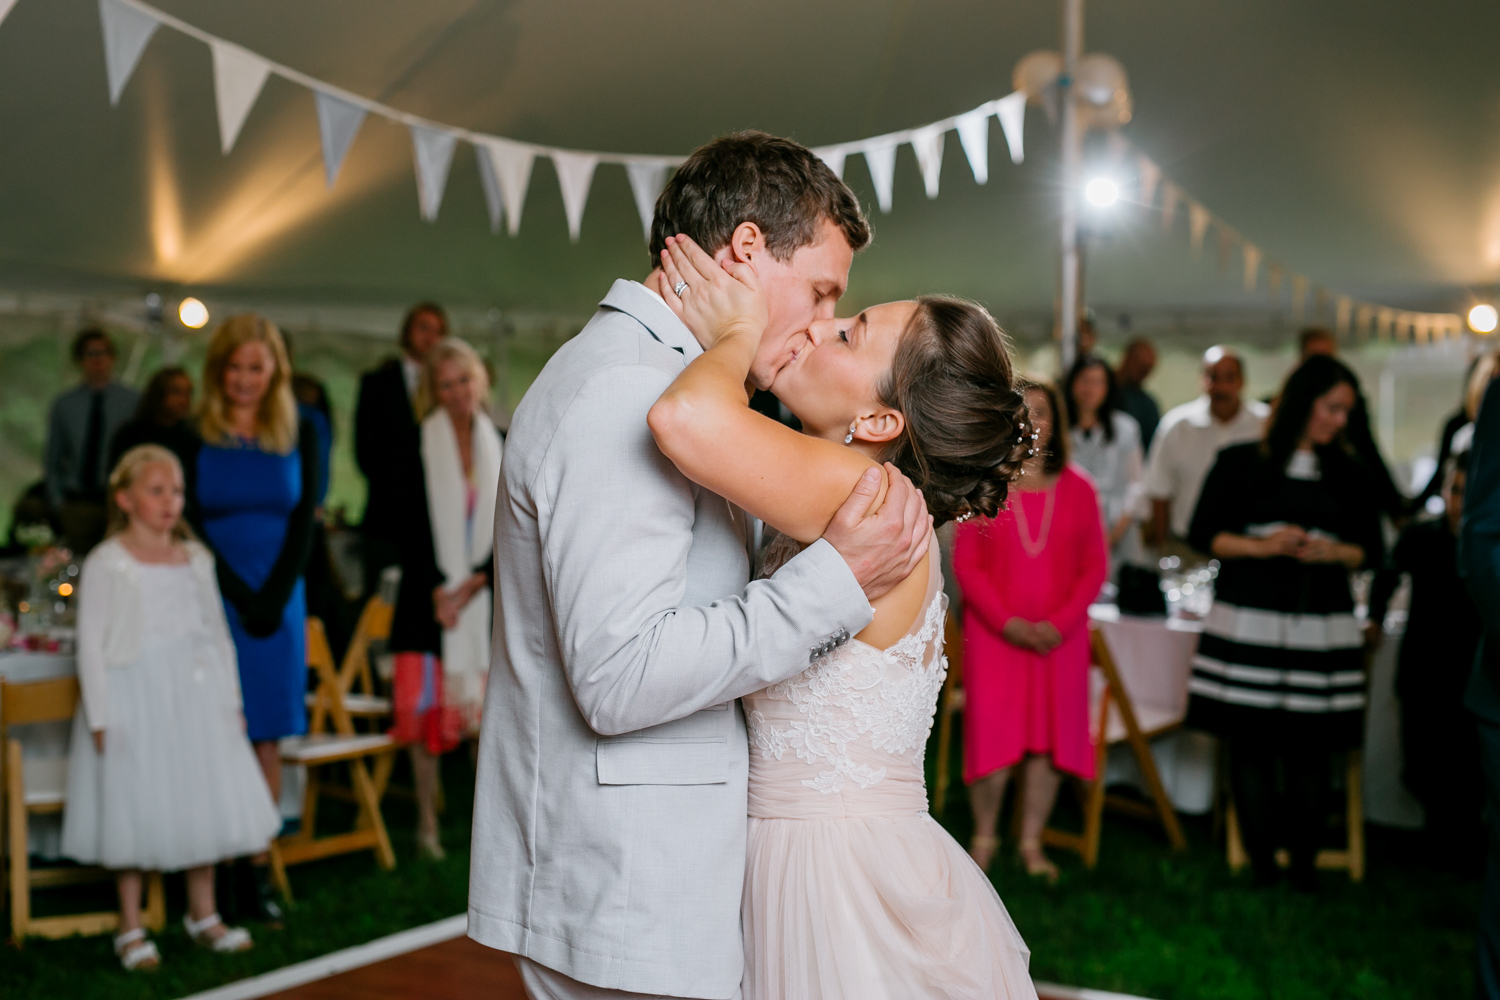 Emily Tebbetts Photography - back yard wedding gif atkinson nh confetti recessional bride and groom pizza truck -13.jpg